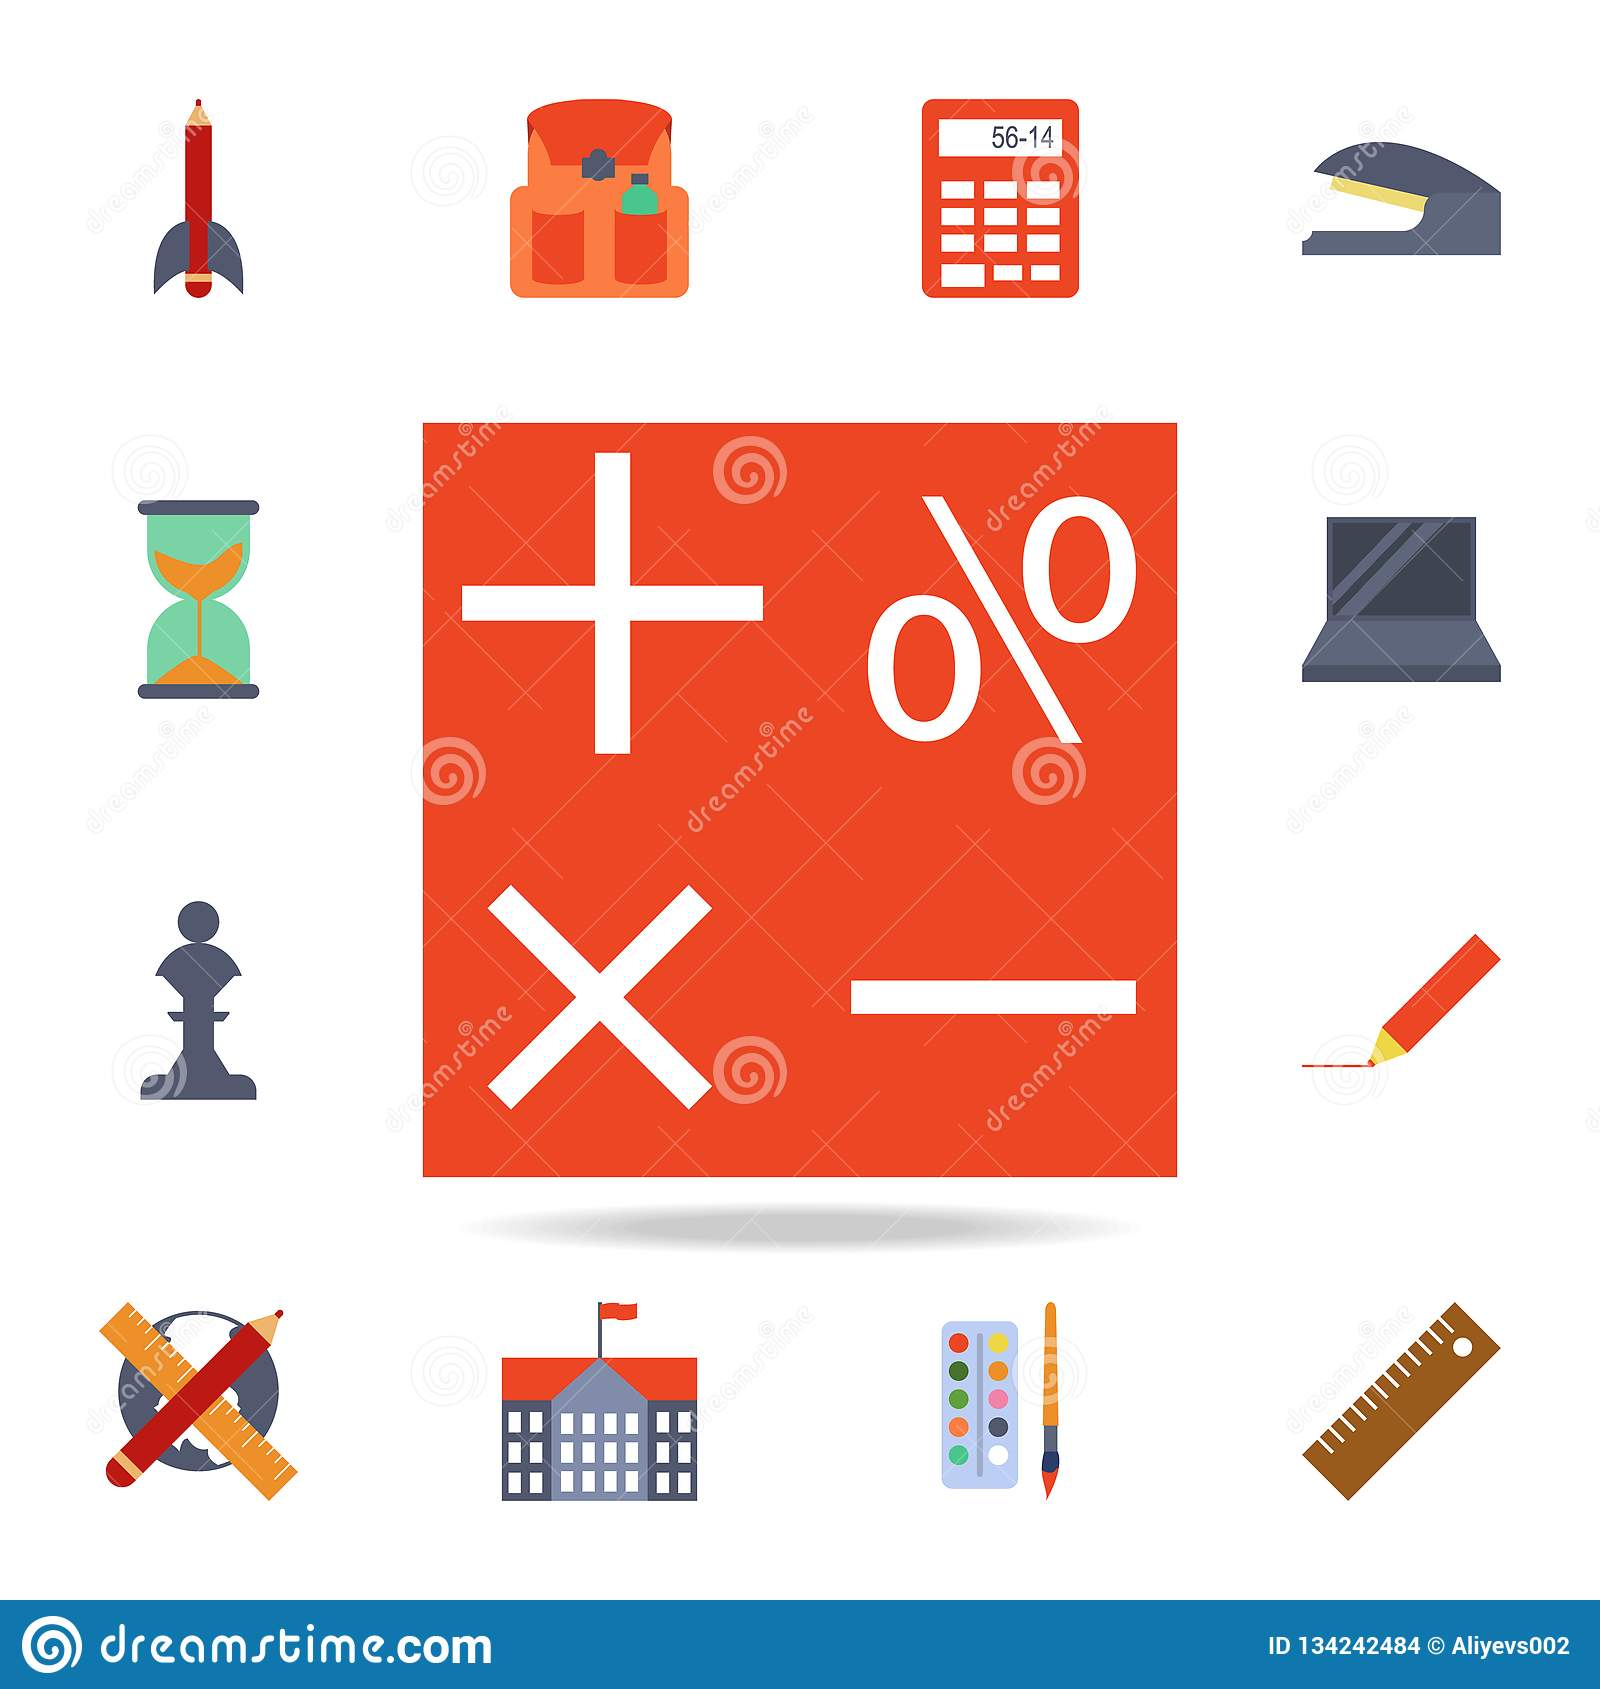 symbols of mathematics colored icon. Detailed set of colored education icons. Premium graphic design. One of the collection icons